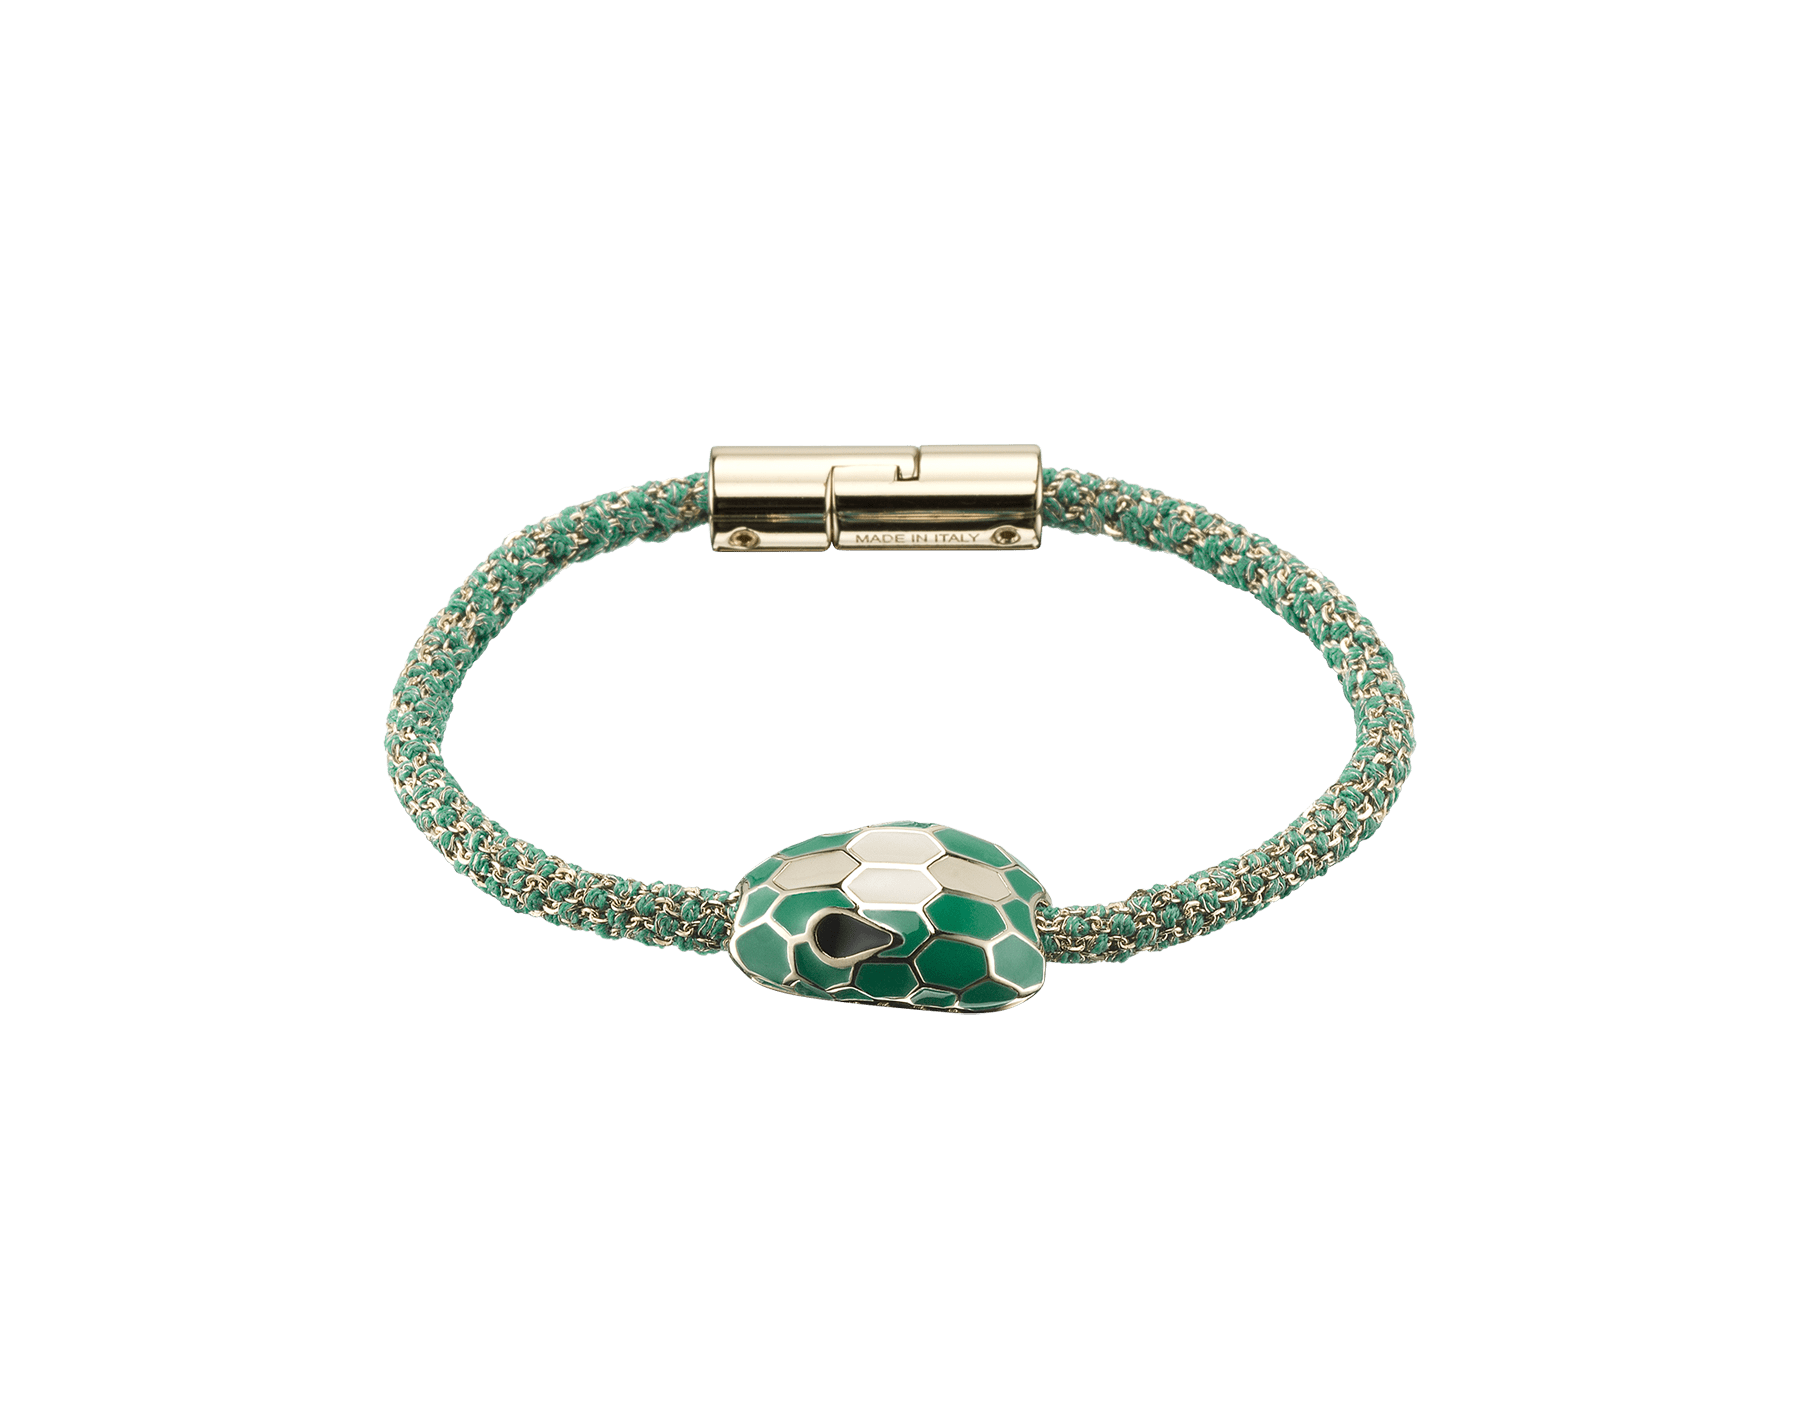 Serpenti Forever bracelet in emerald green metallic woven silk with an iconic snake head décor in white and emerald green enamel. RollingChain-S-EG image 1